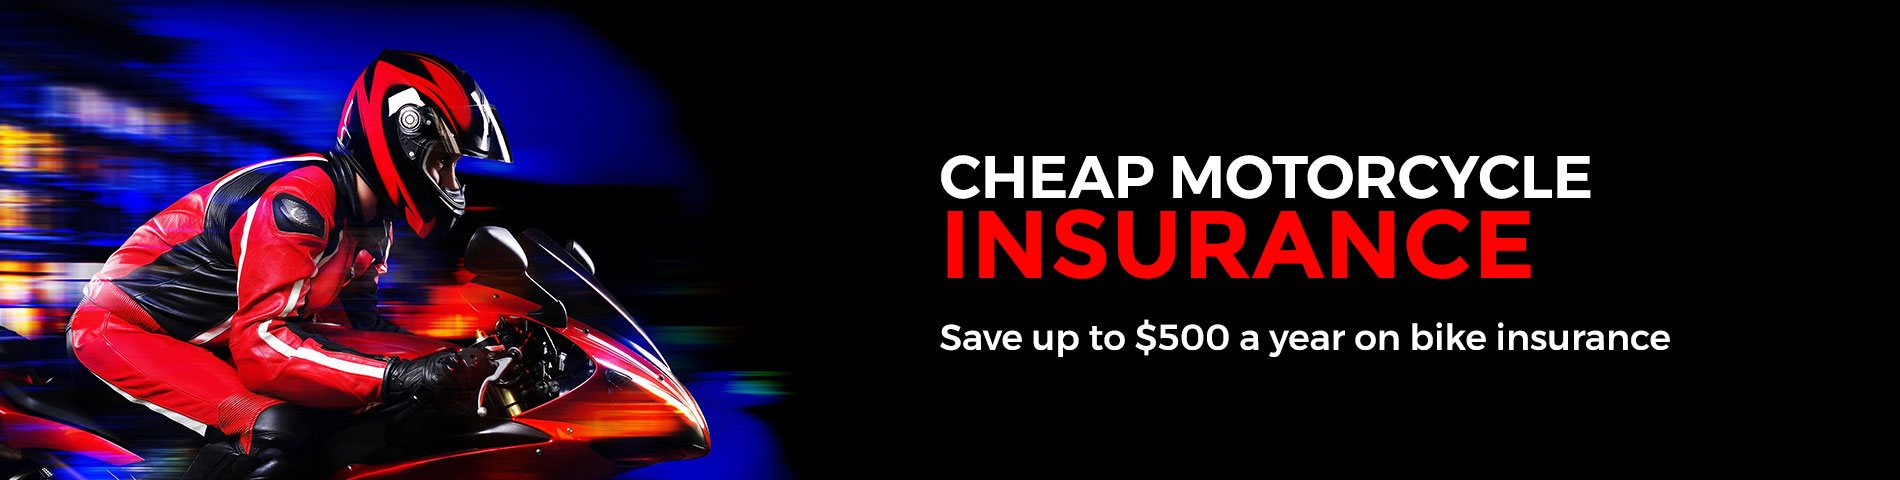 Motorcycle Insurance Quotes | Cheap Motorcycle Insurance Quotes Affordable Insurance Of Jax